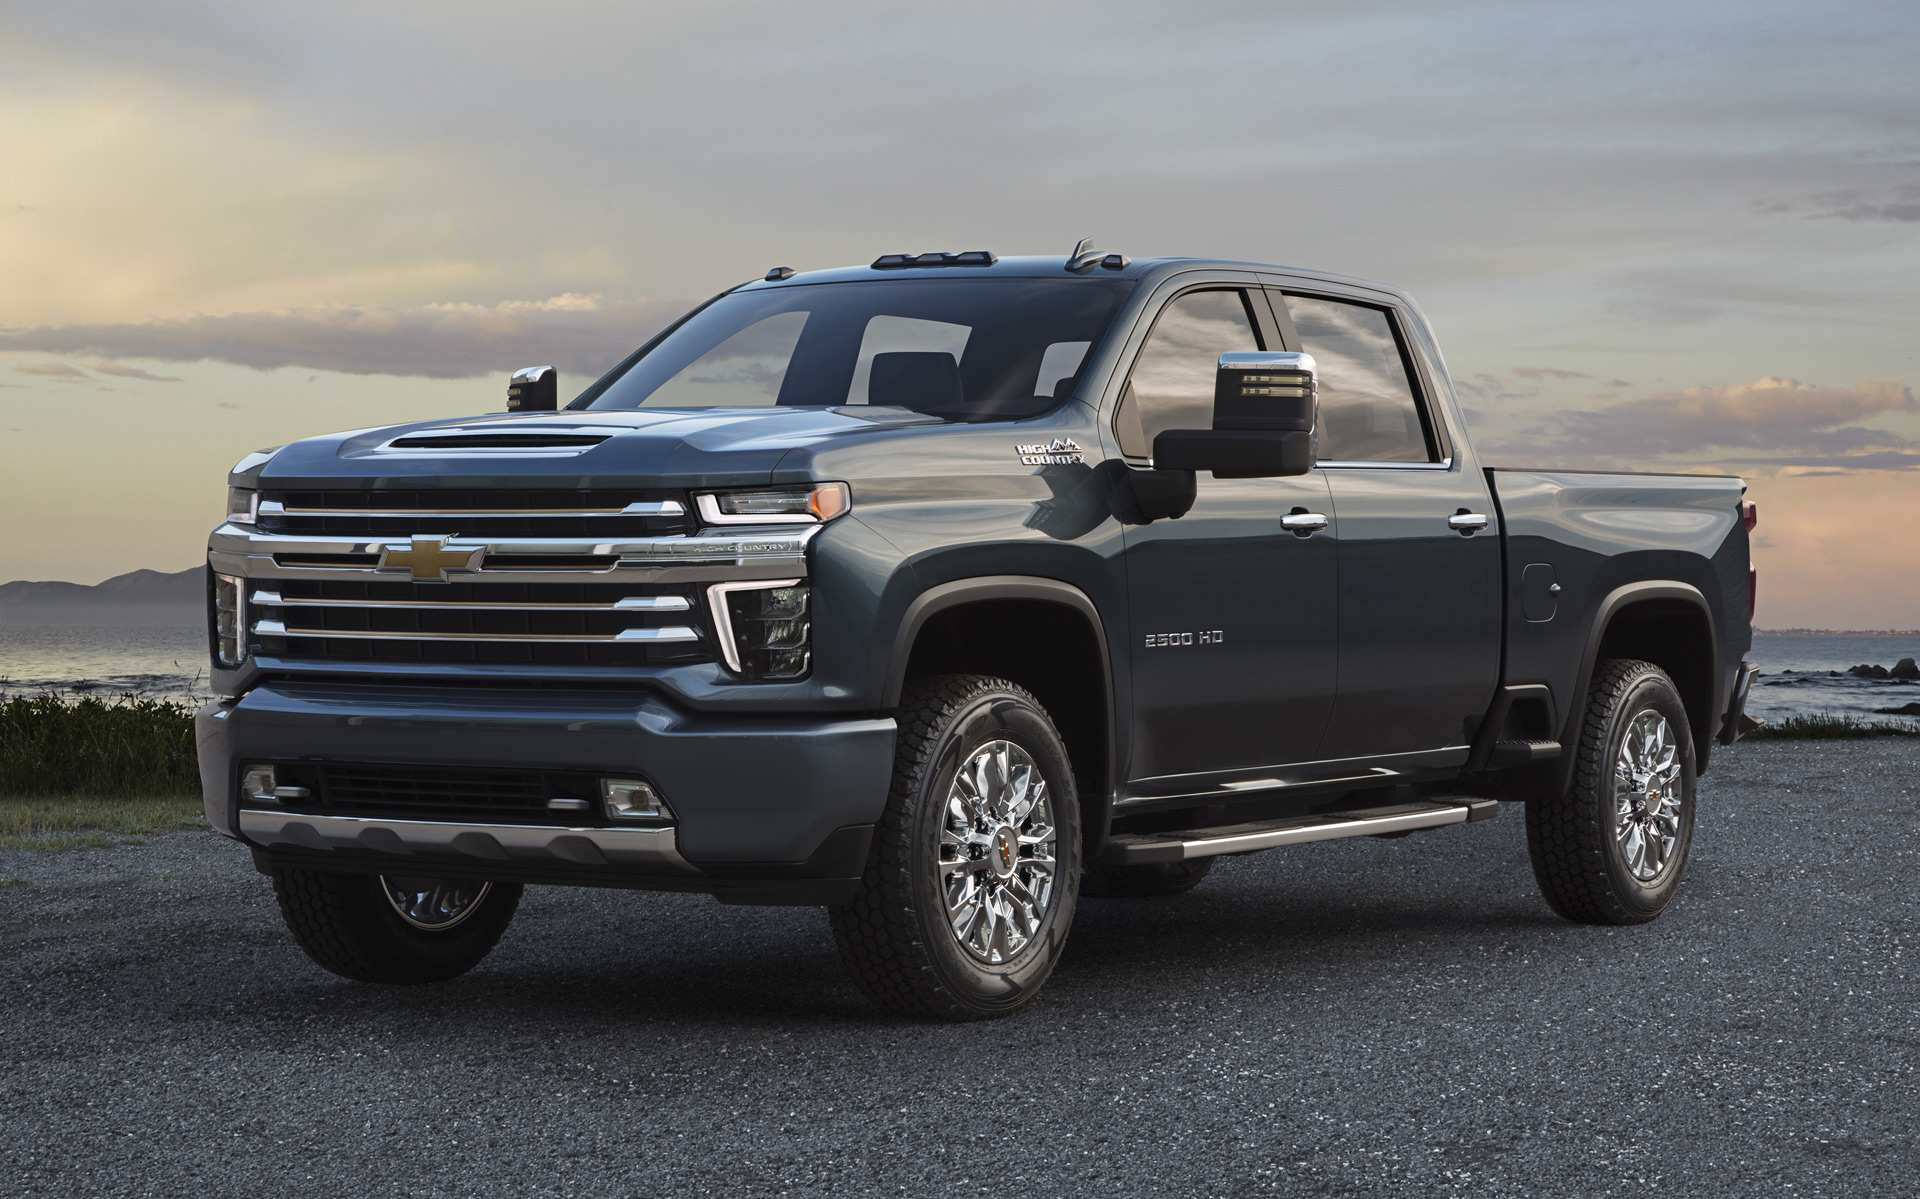 69 New 2020 Chevrolet Silverado Images Pricing